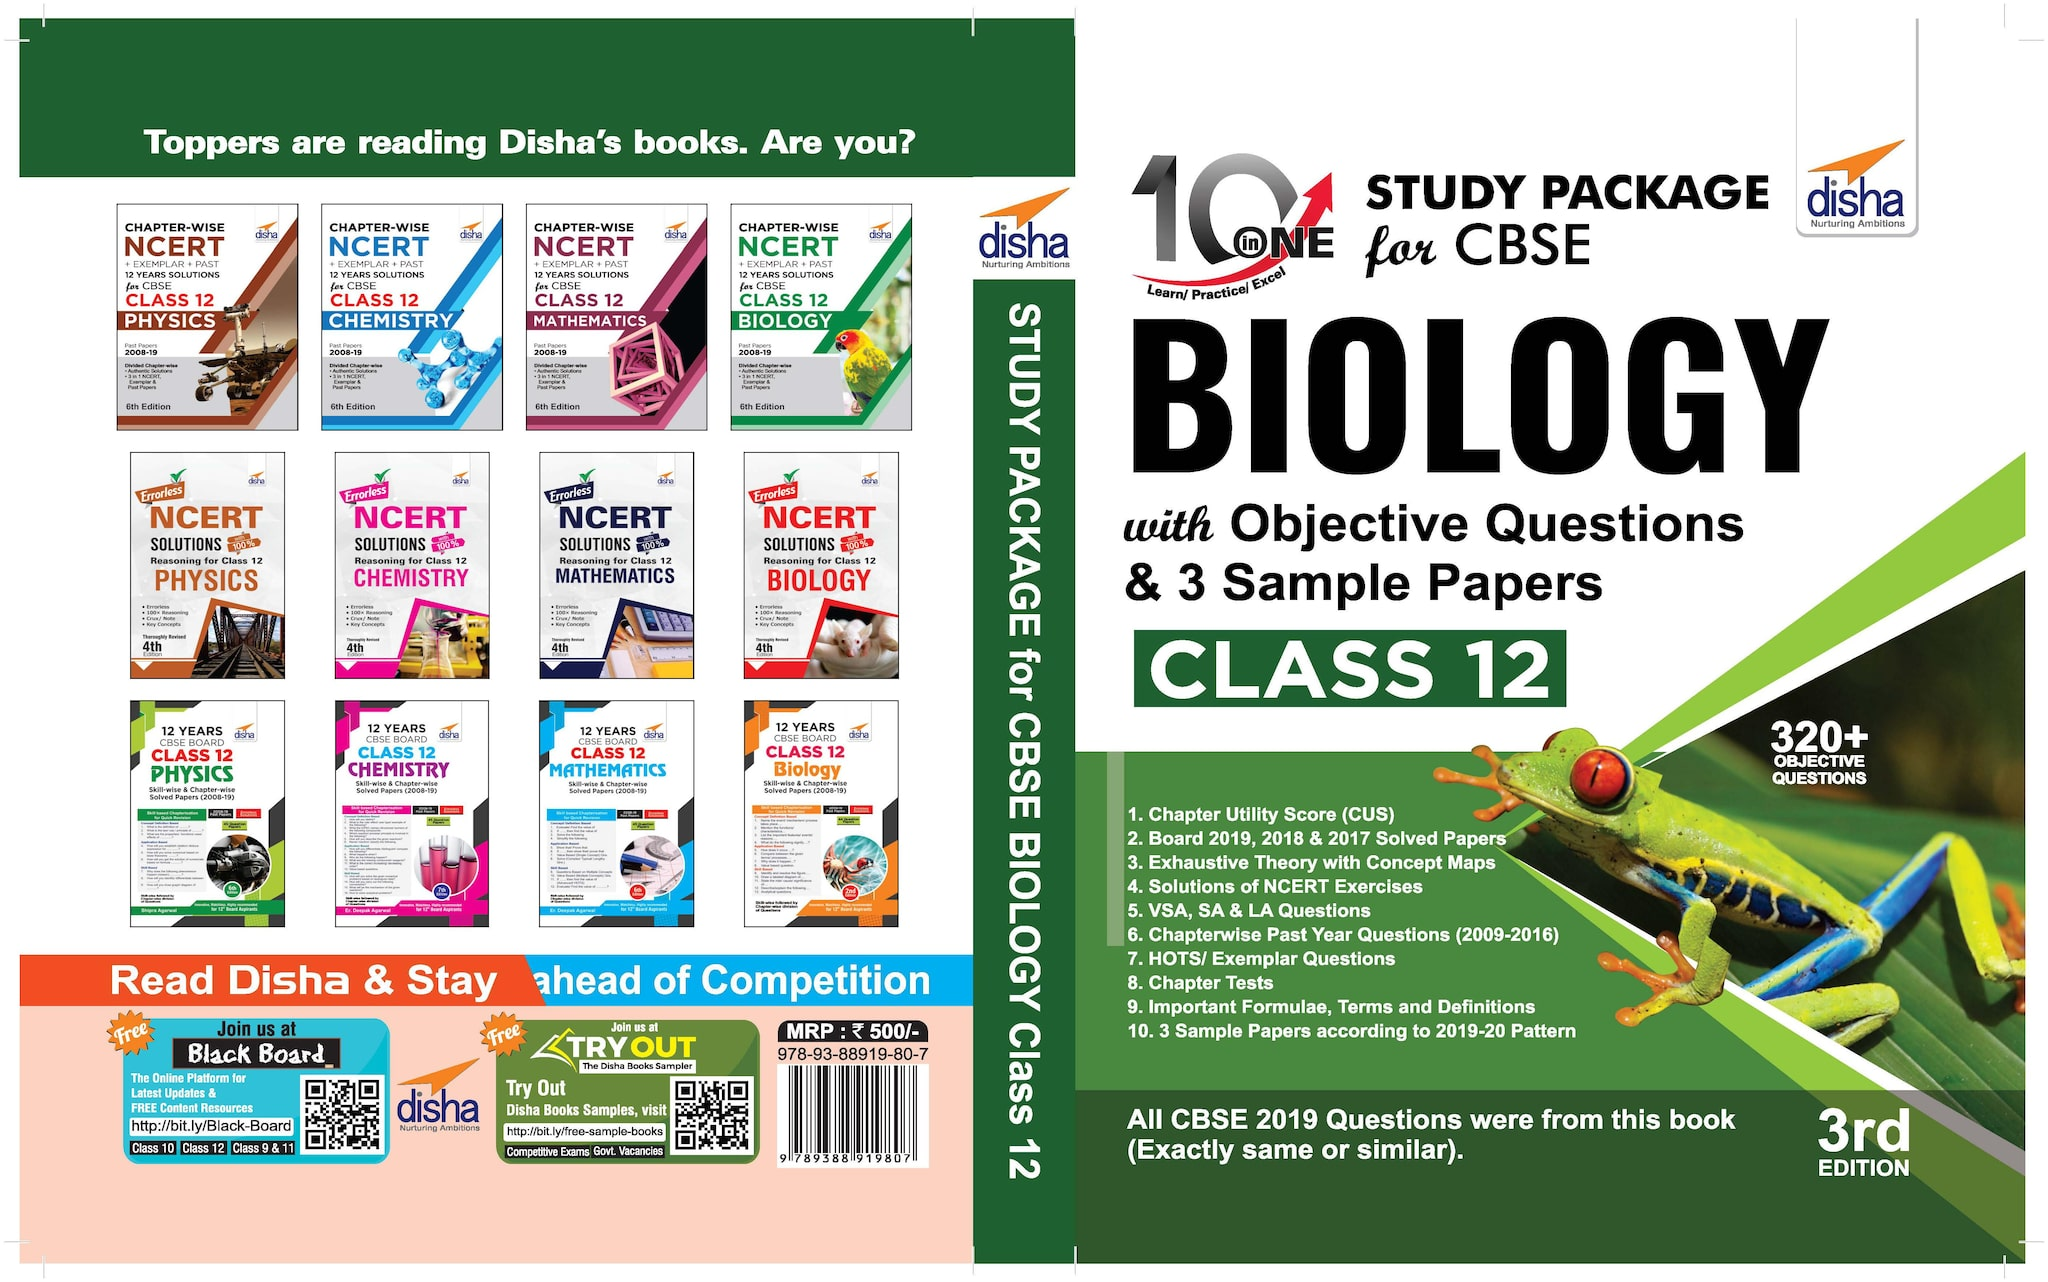 Disha Publication CBSE Prices | Buy Disha Publication CBSE online at